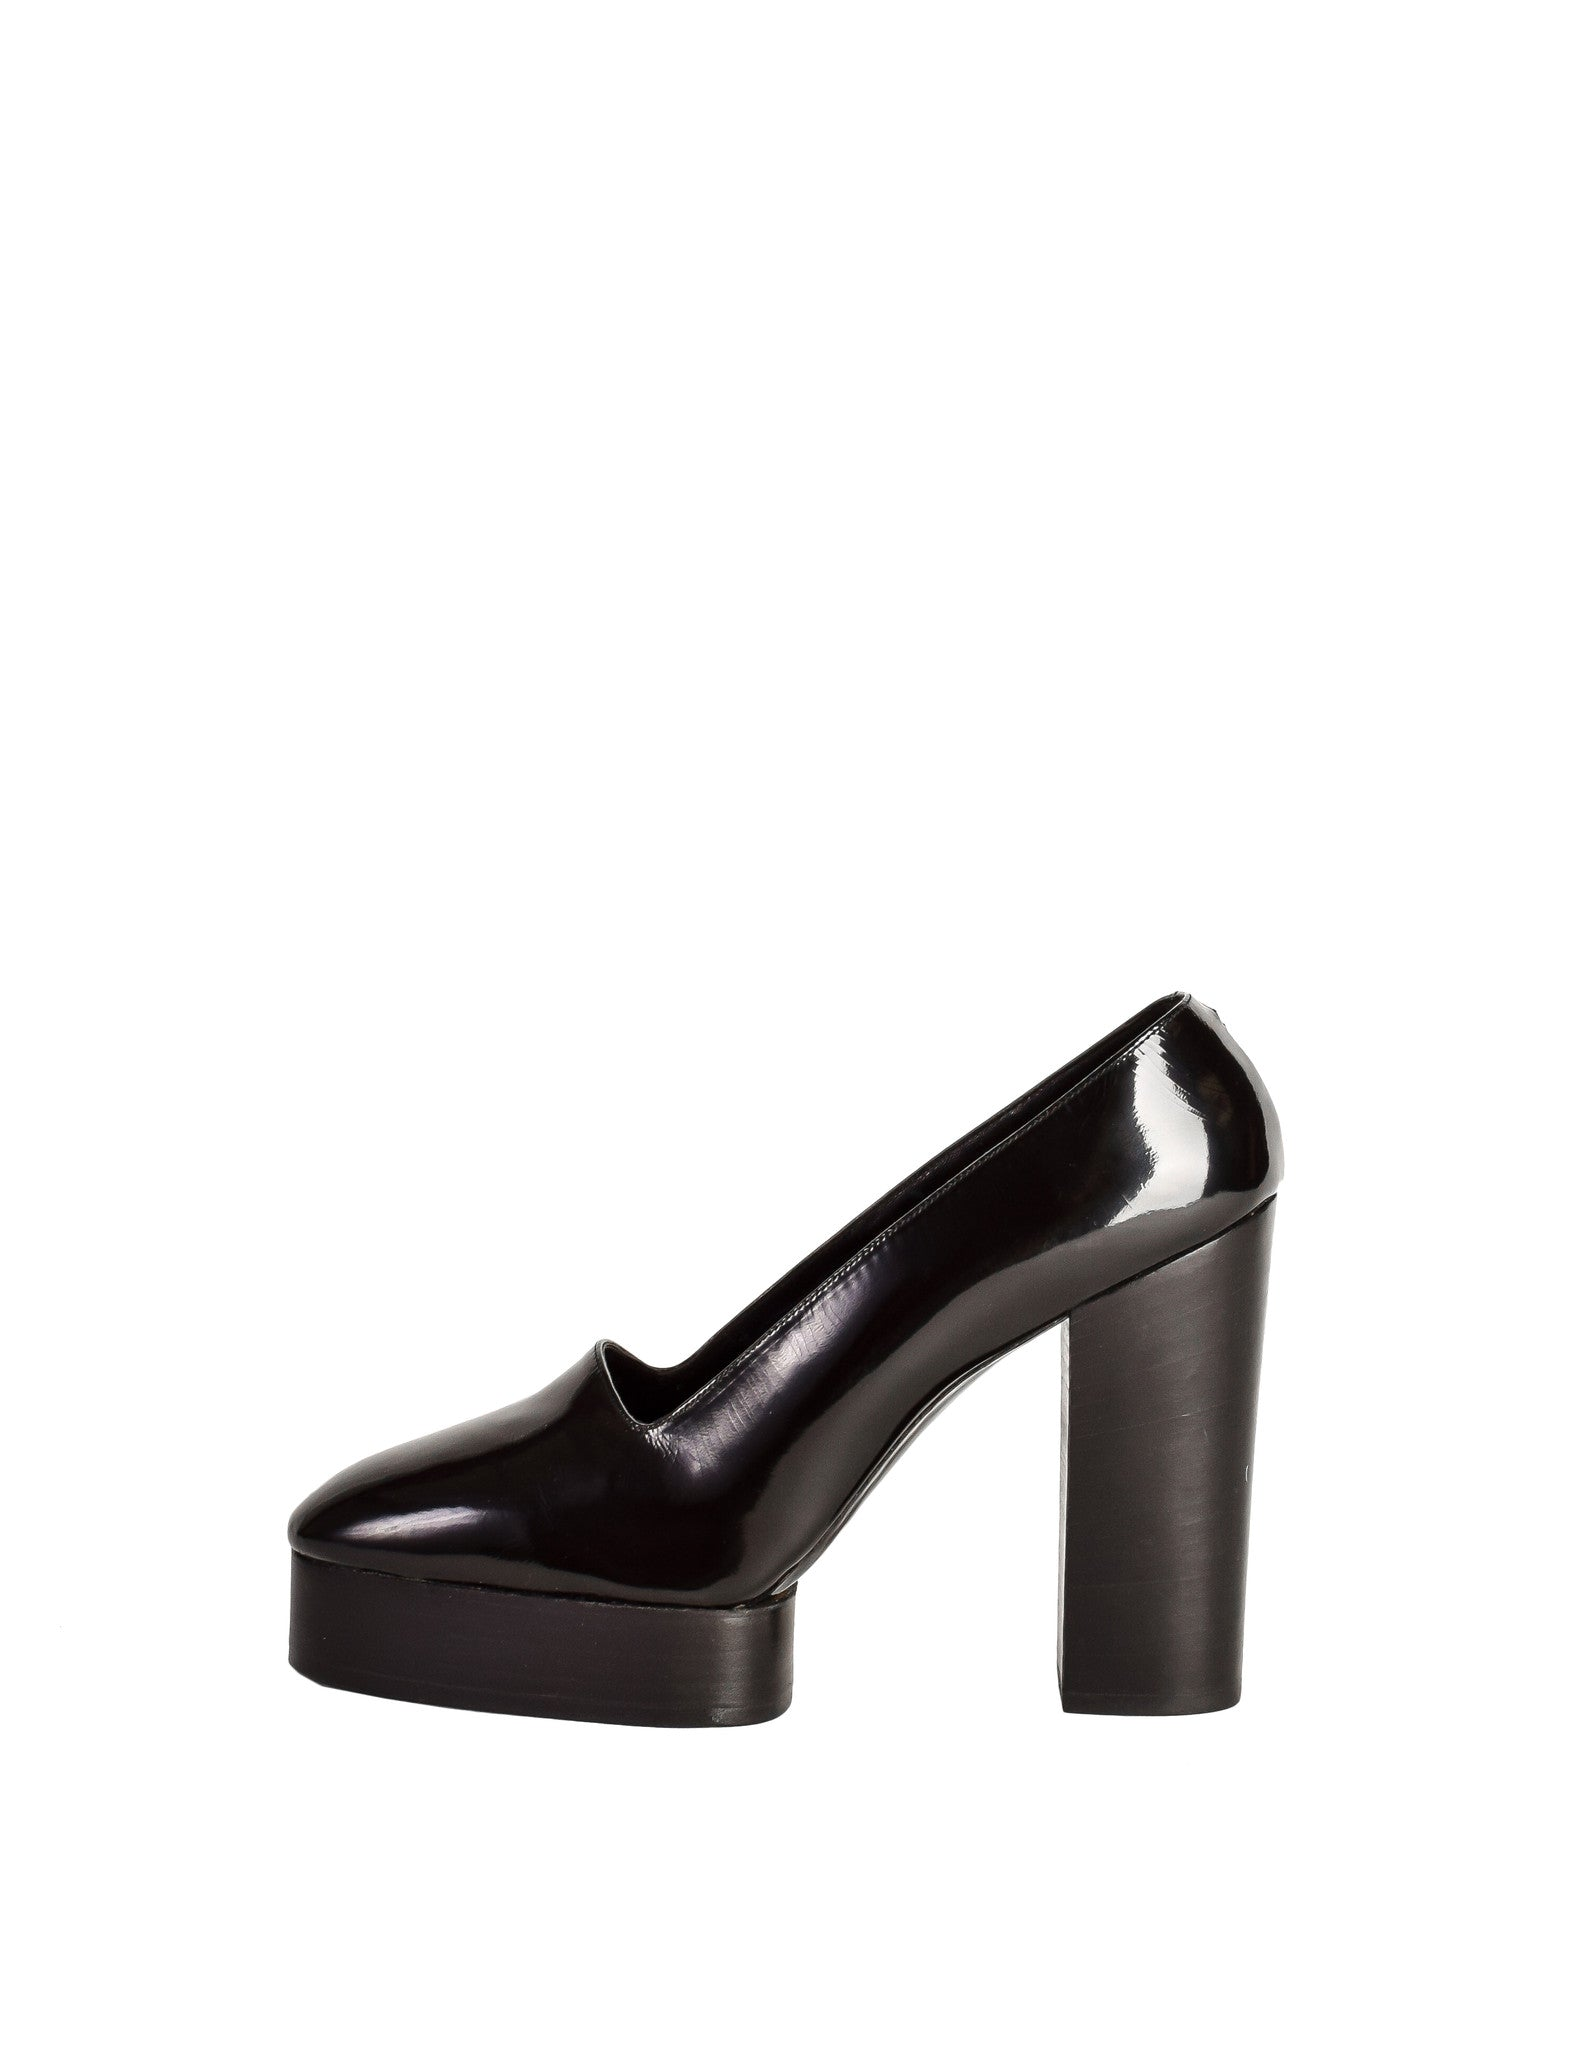 Walter Steiger Vintage Black Patent Leather Platform Heels Shoes - Amarcord Vintage Fashion  - 1